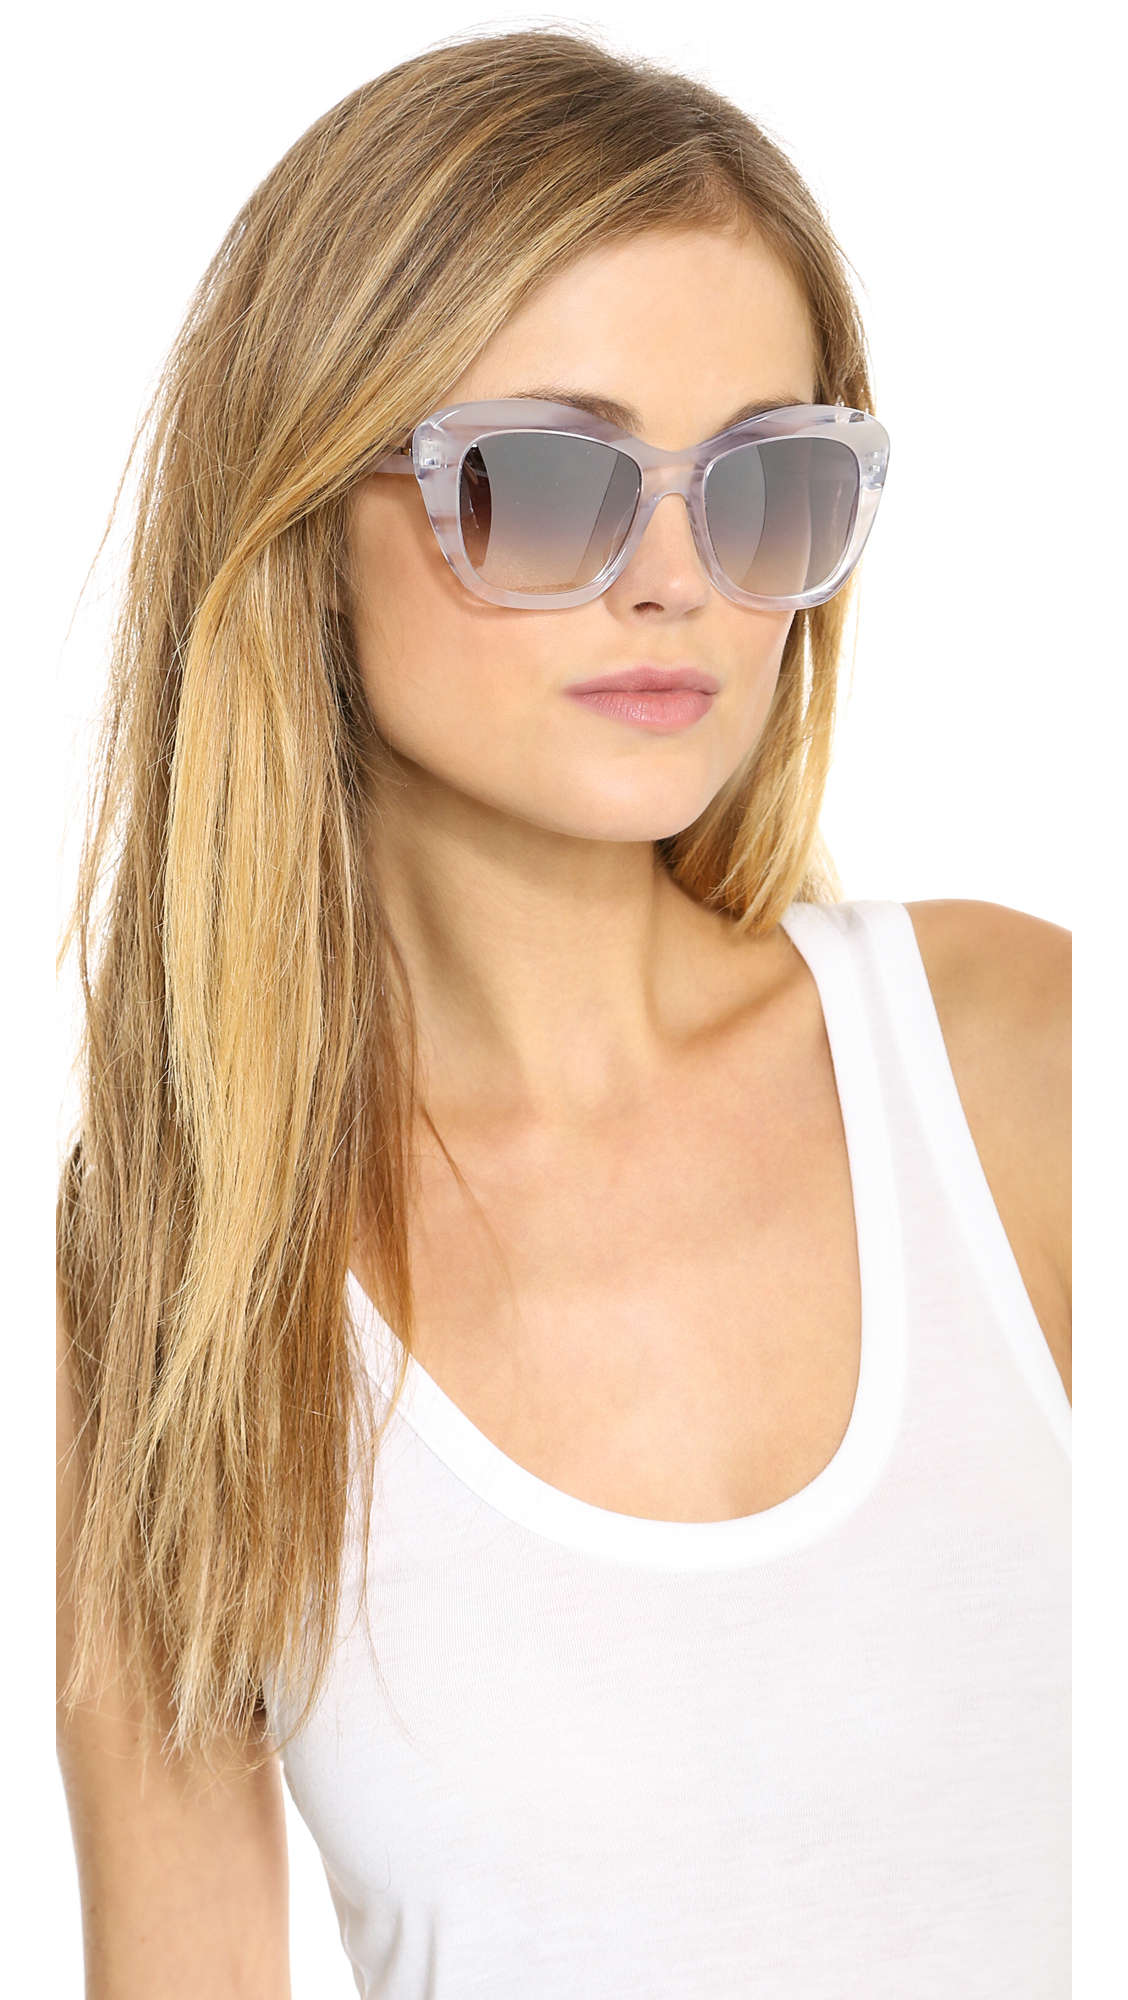 Oliver Peoples Emmy Mirror Sunglasses - Ghost